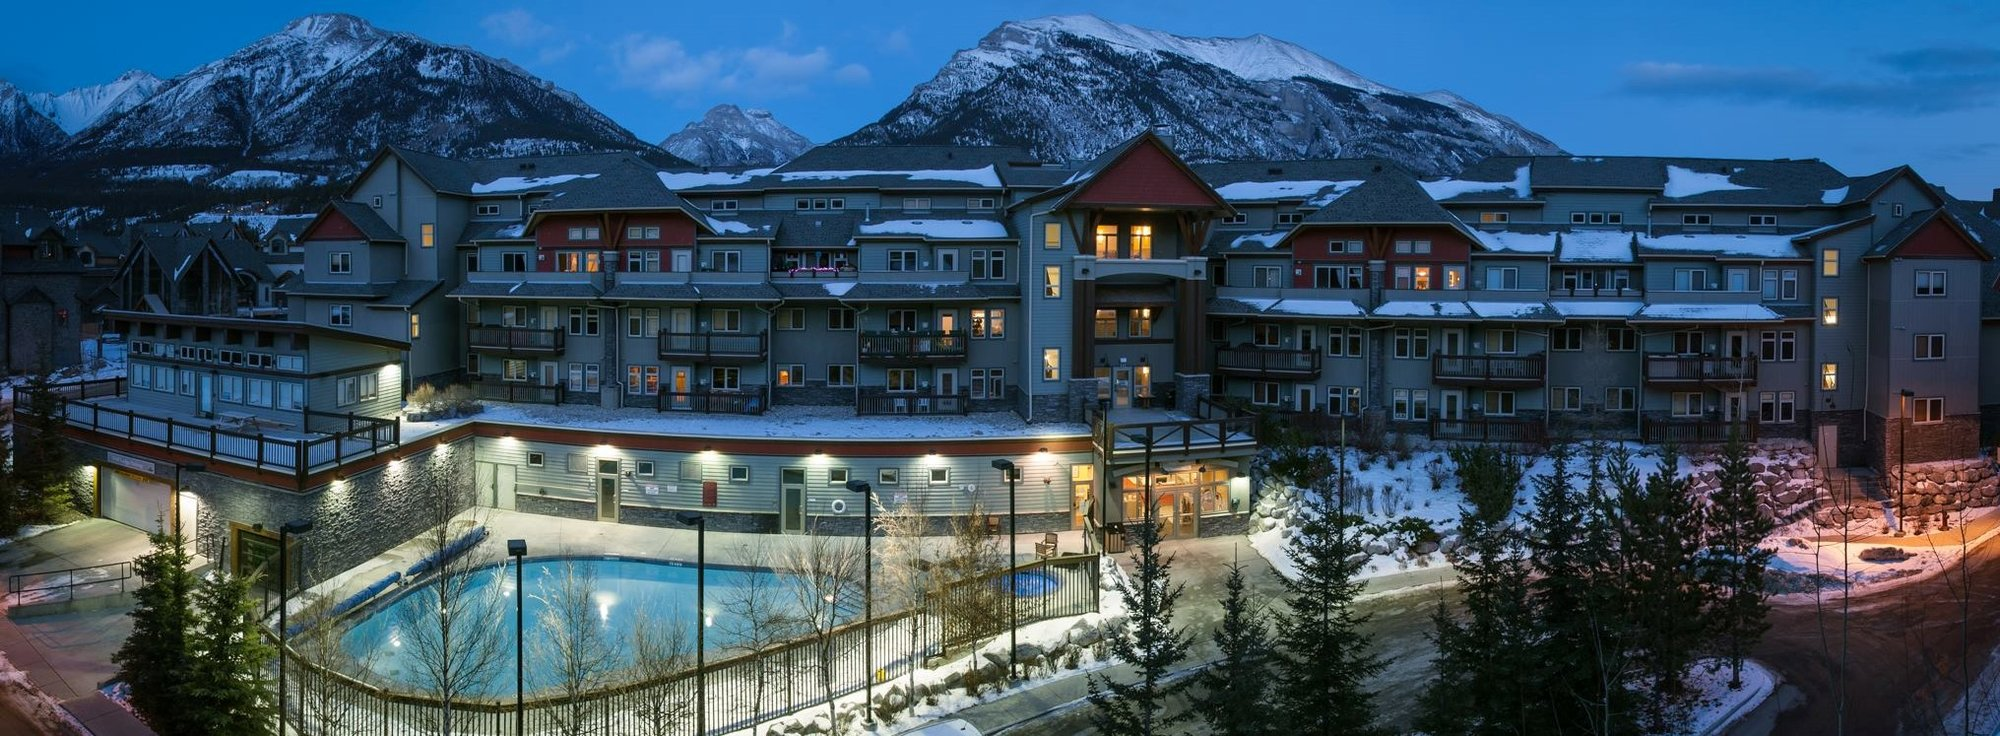 Lodges Canmore Condos For Sale